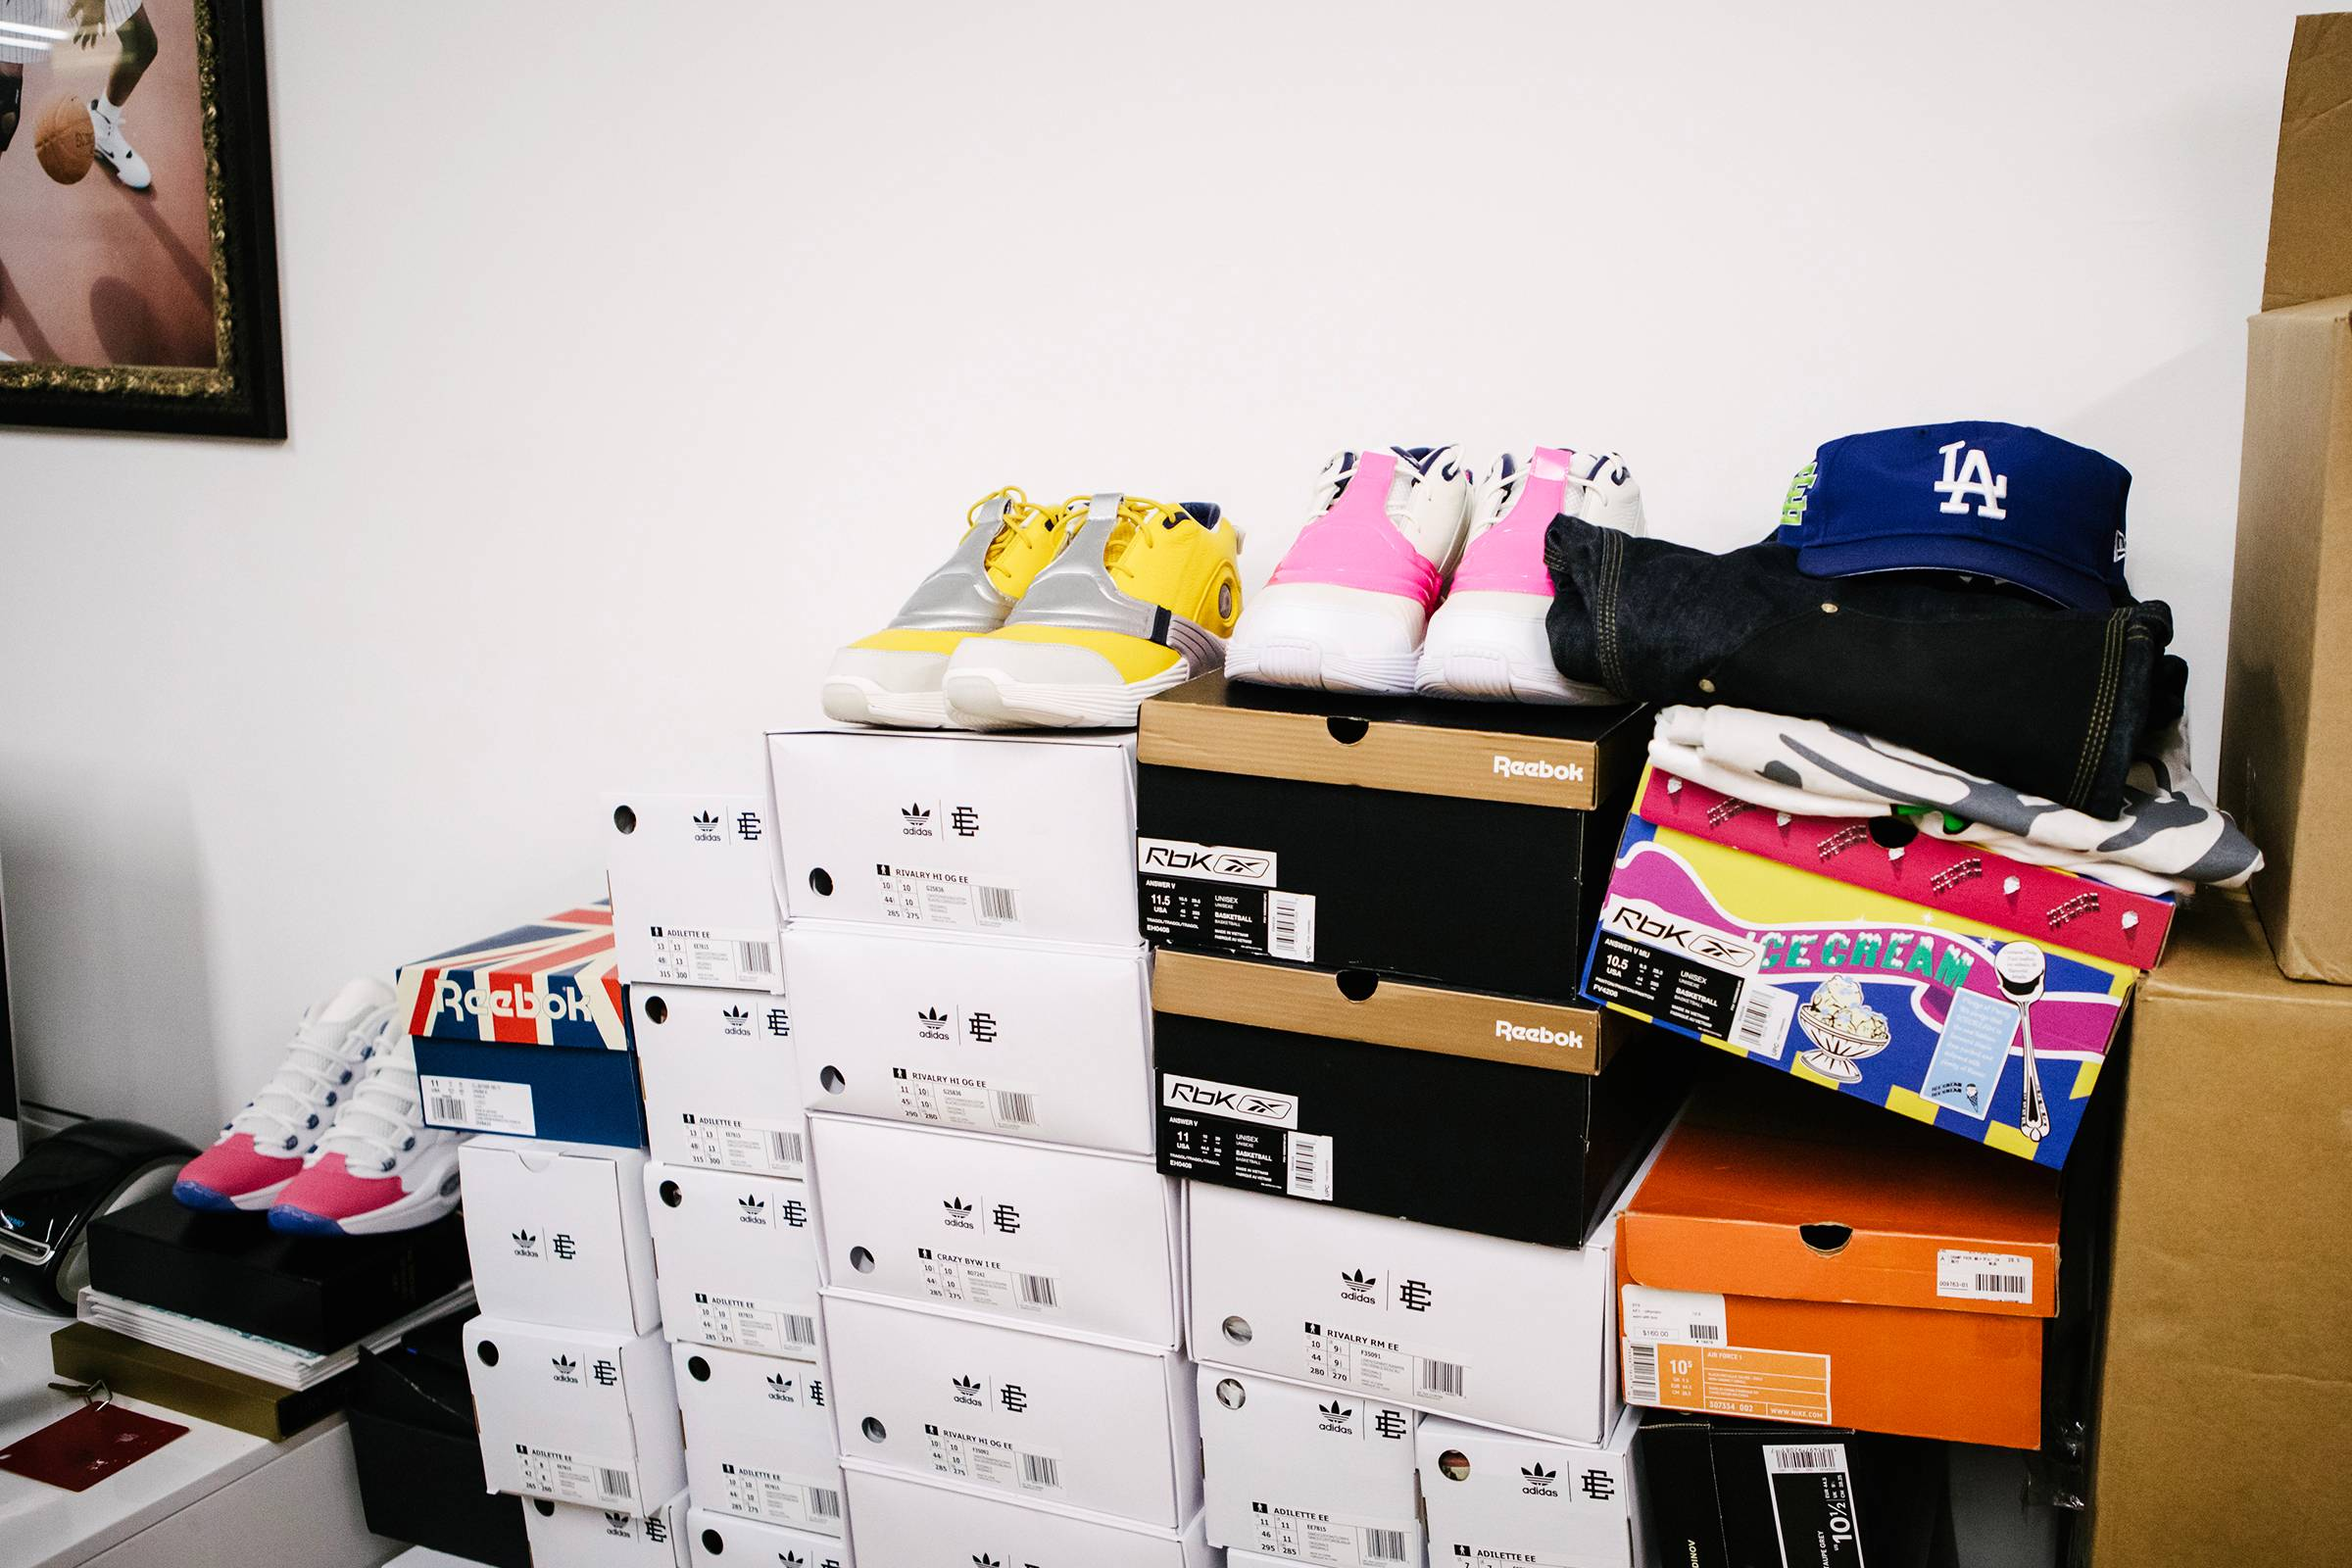 A moutain of shoeboxes—including Eric Emanuel's collaboration with Reebok and Allen Iverson—in Emanuel's office.